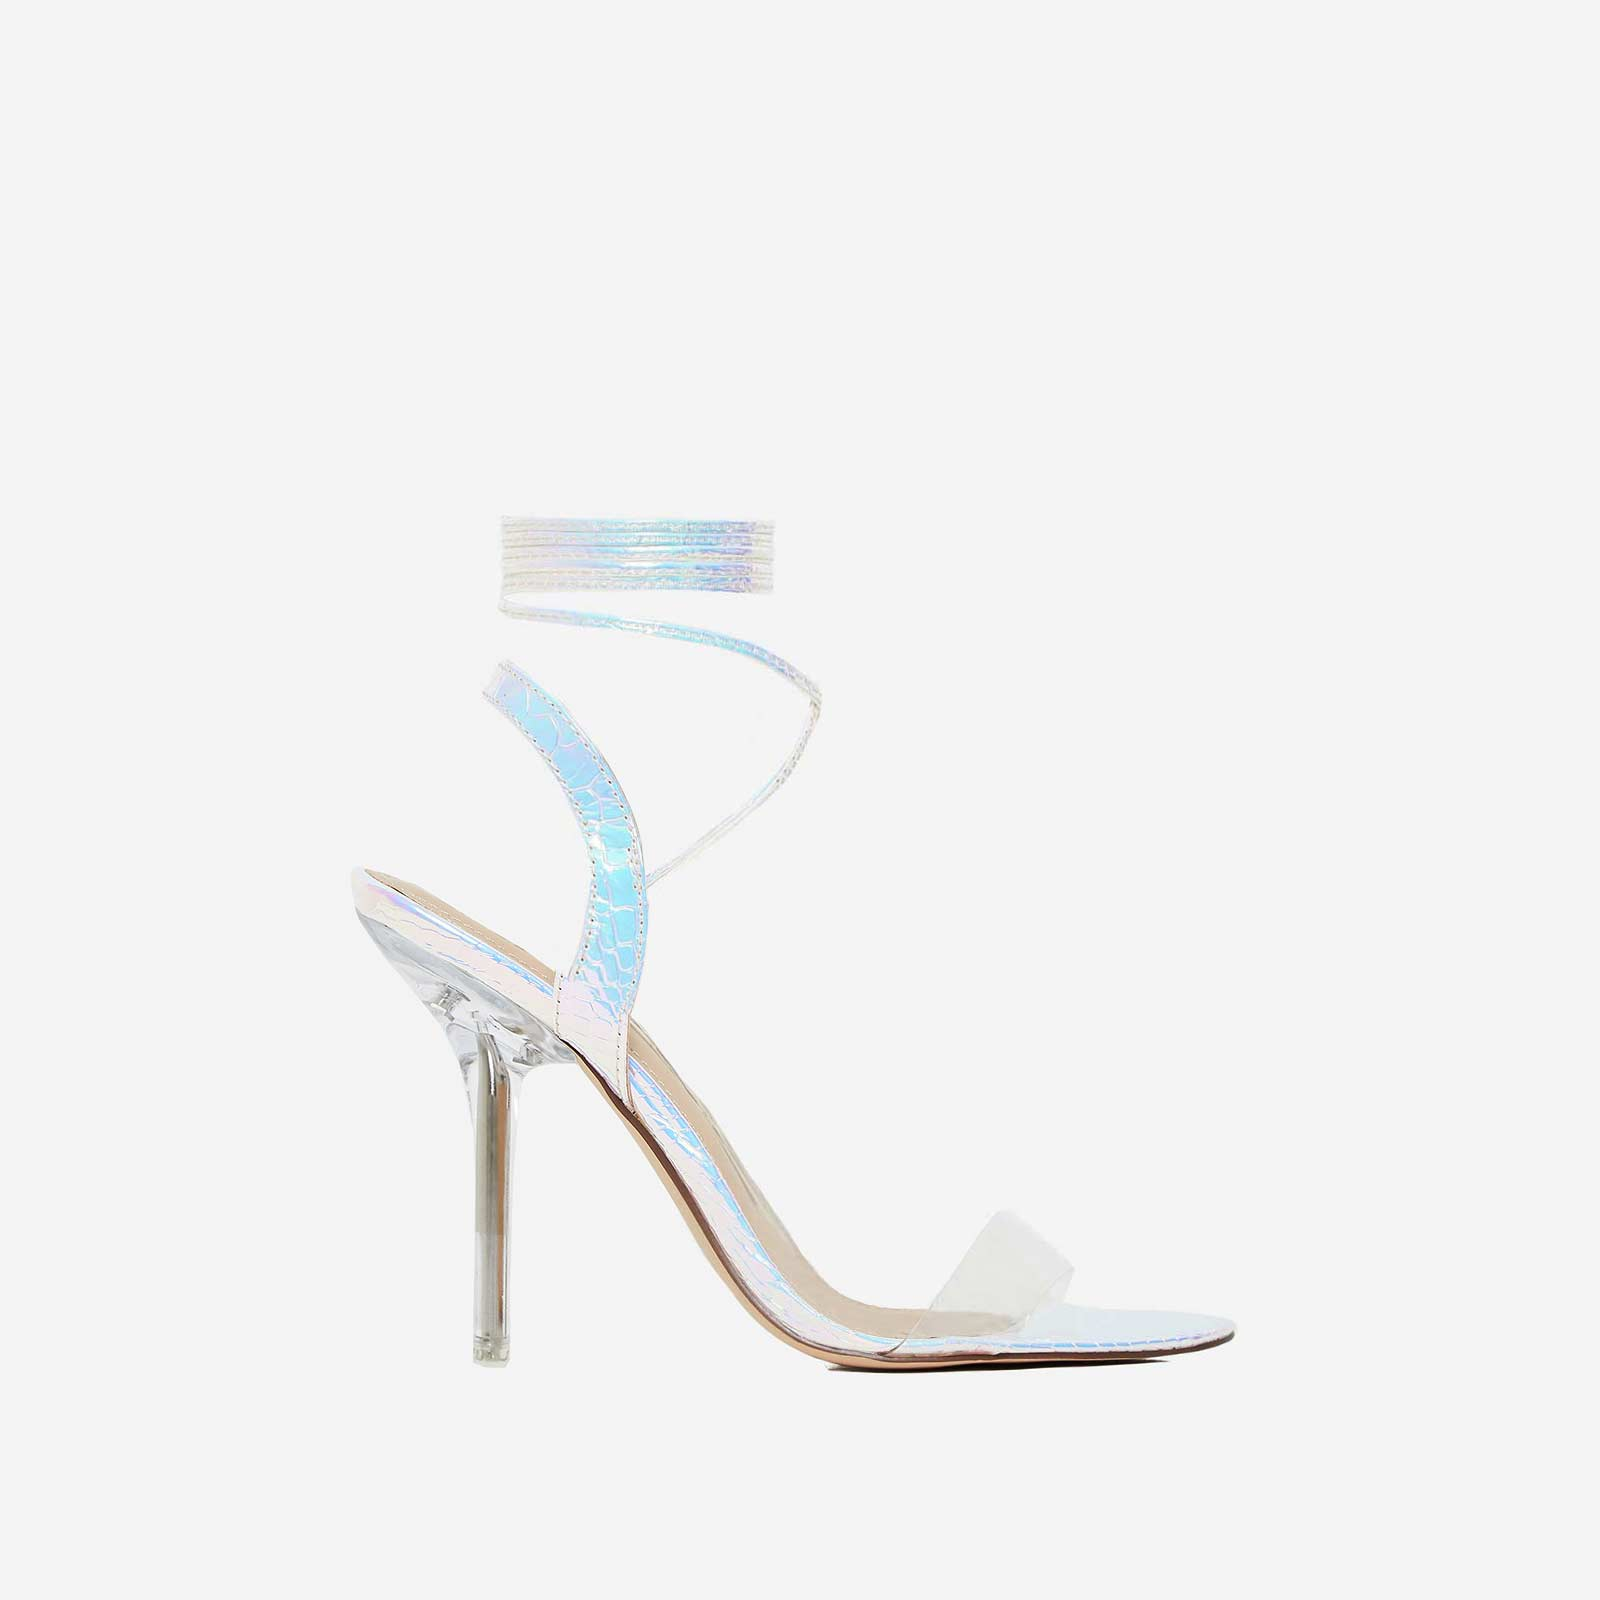 Foxy Lace Up Perspex Heel In Silver Snake Print Faux Leather